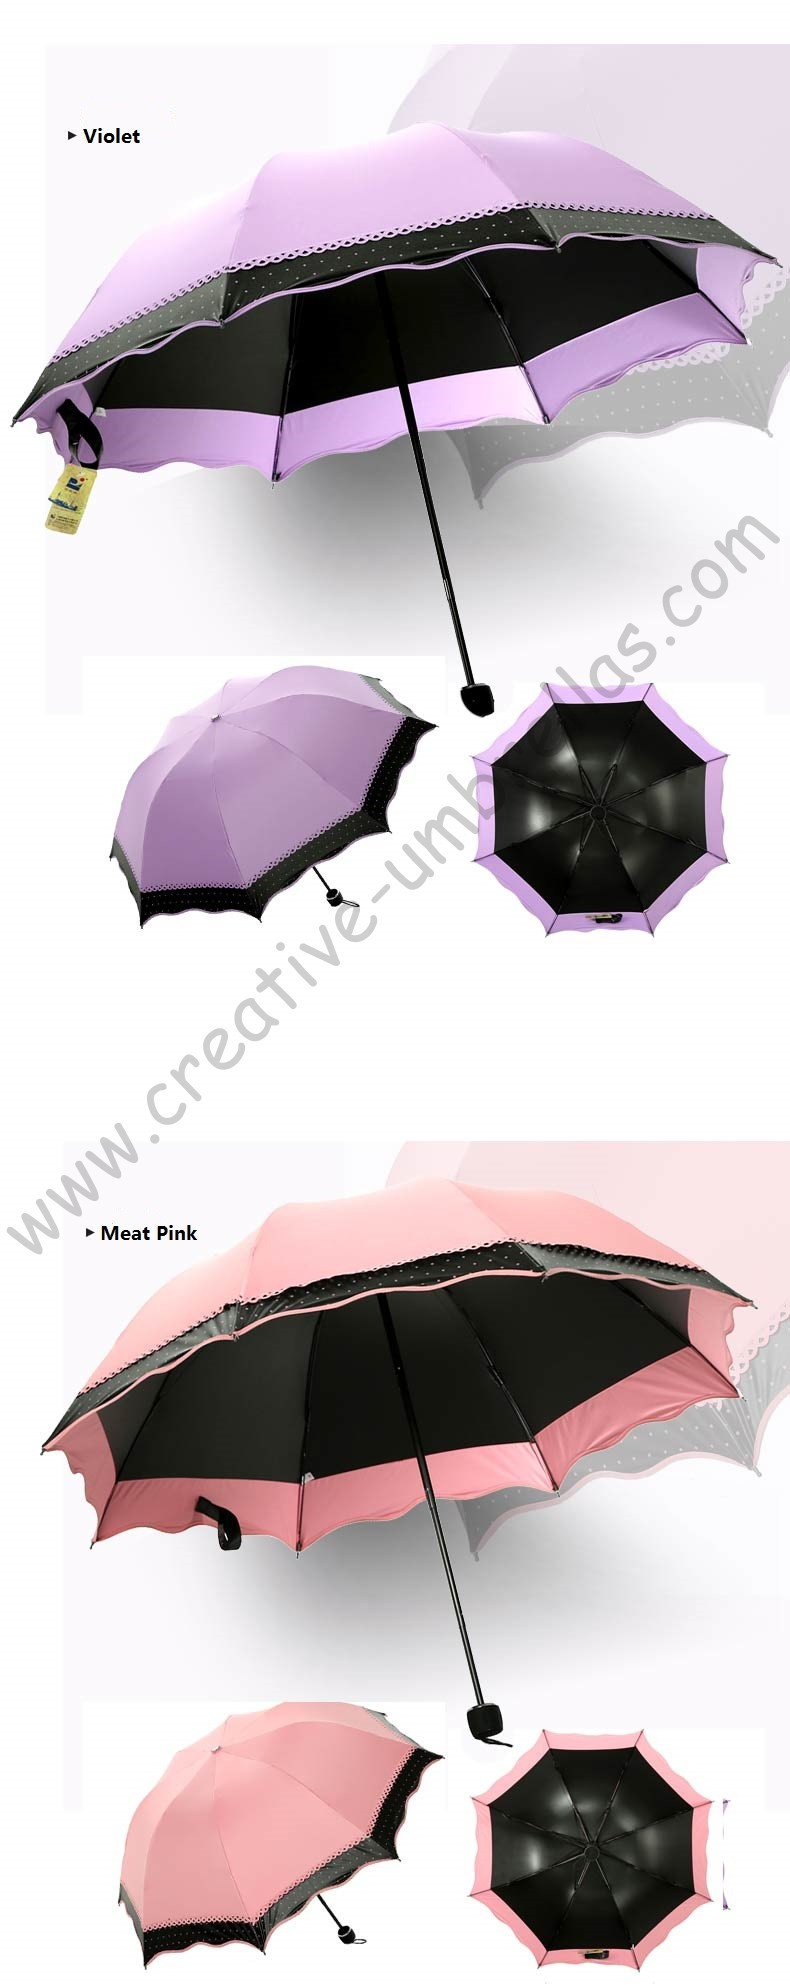 3pc lot colour option summer folding mini sunny umbrella 5 times black  coating Anti-UV fruit green two layers lace parasol - us608 a44f167f63